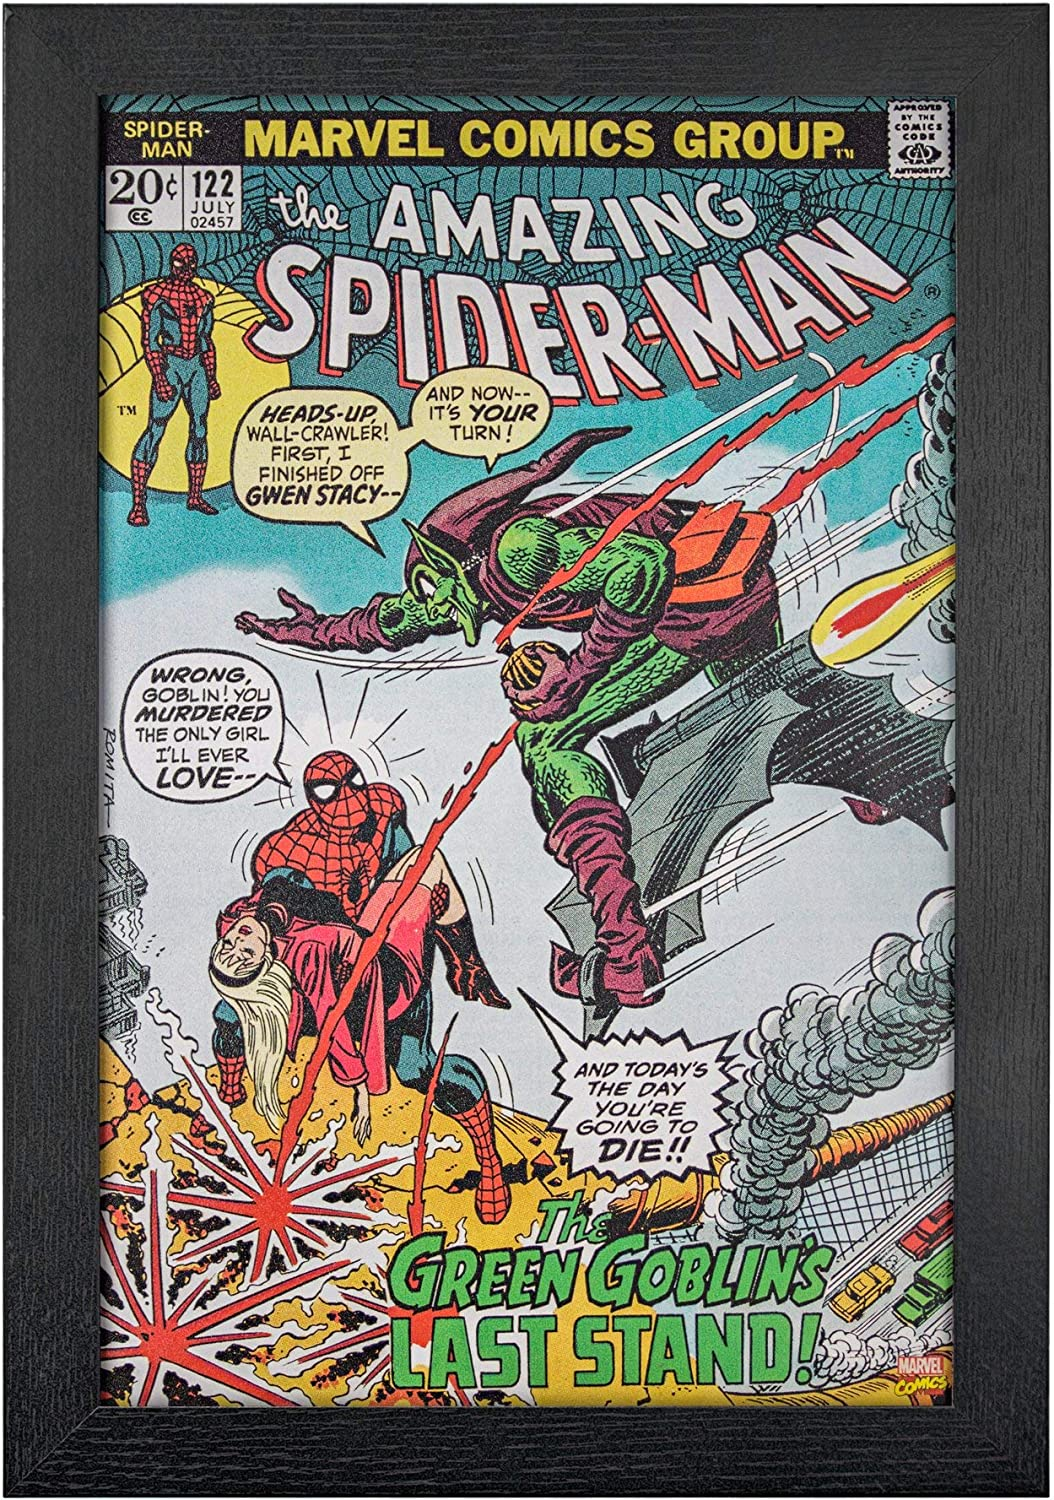 Marvel Comics Spider-Man and The Green Goblin's Last Stand Comic Book Cover, Replica of Classic 1973 July #122 Cover, 19